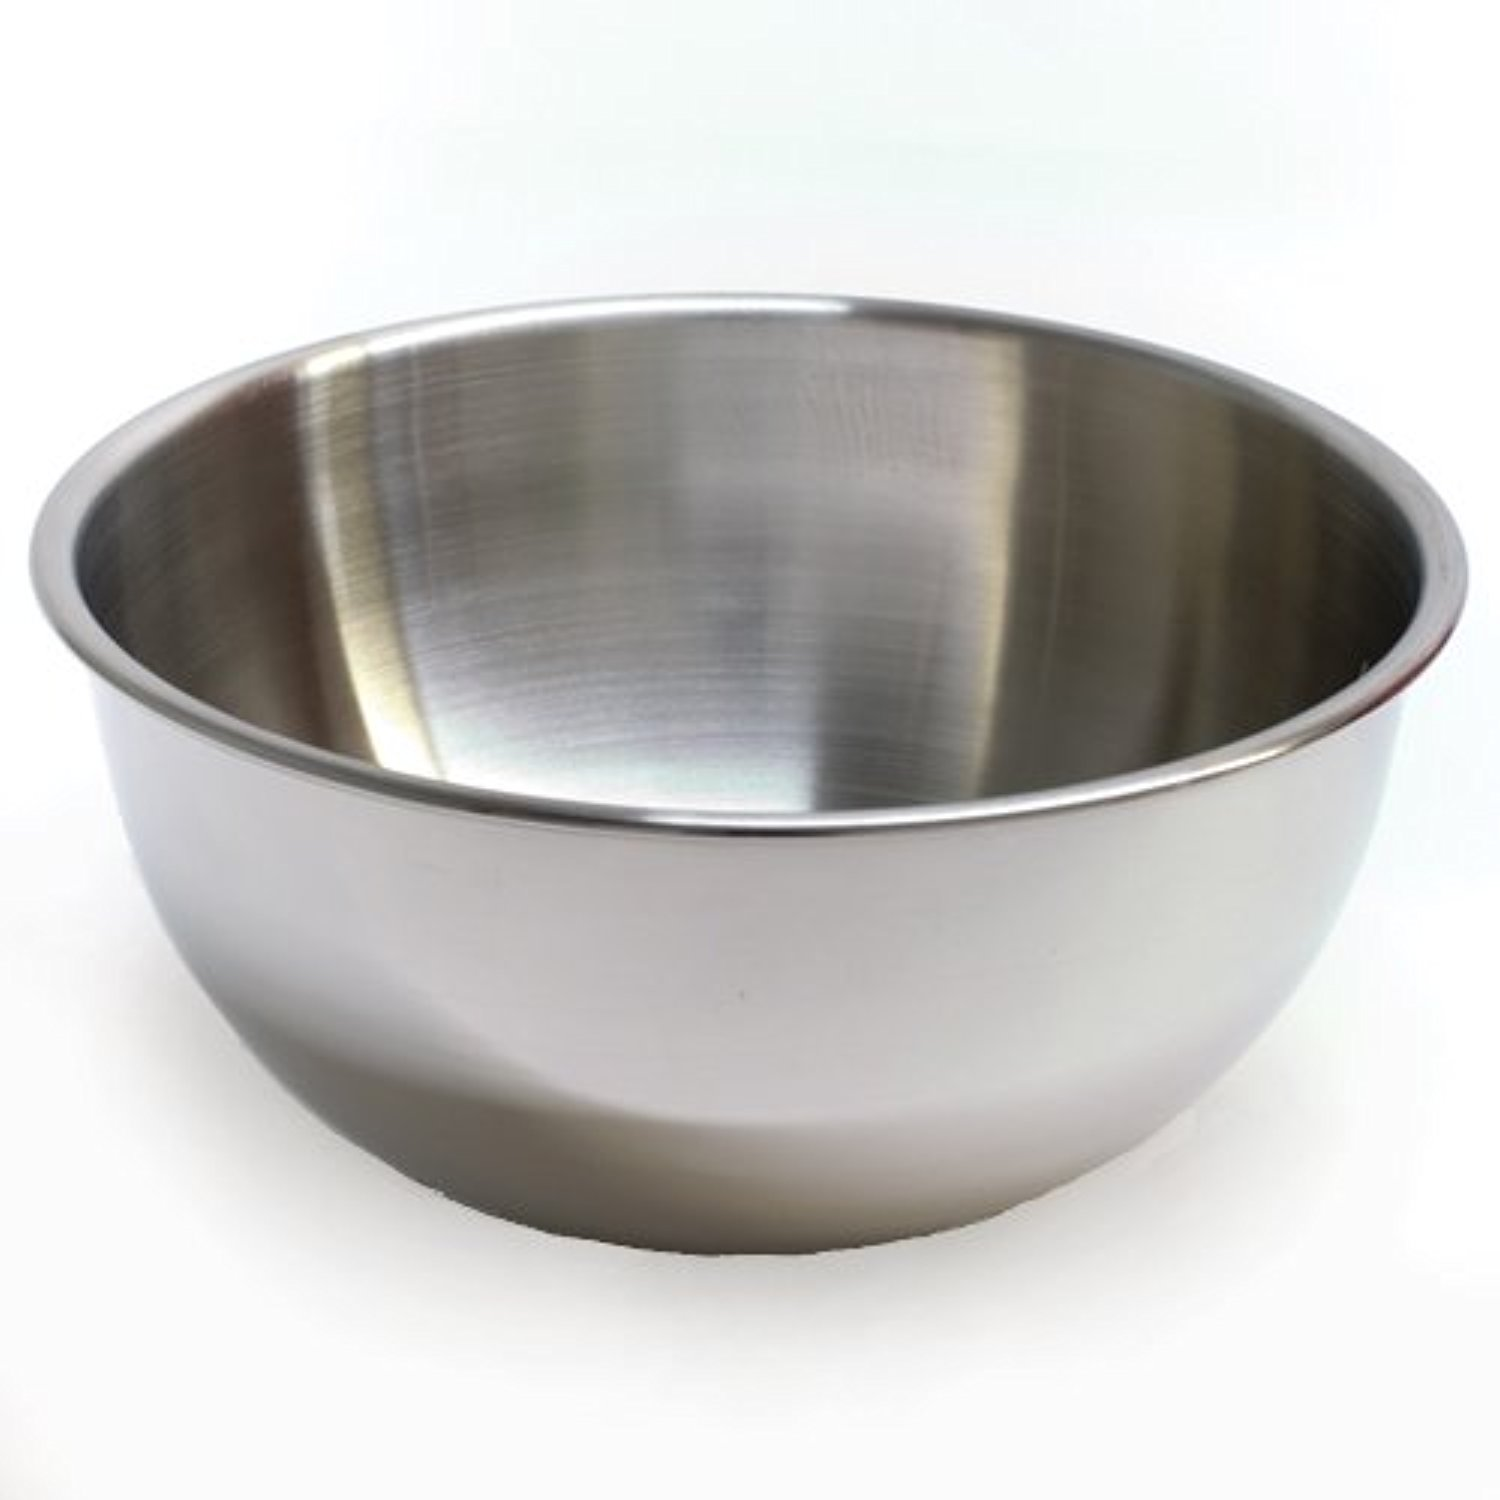 RSVP Endurance Stainless Steel 4 Quart Mixing Bowl